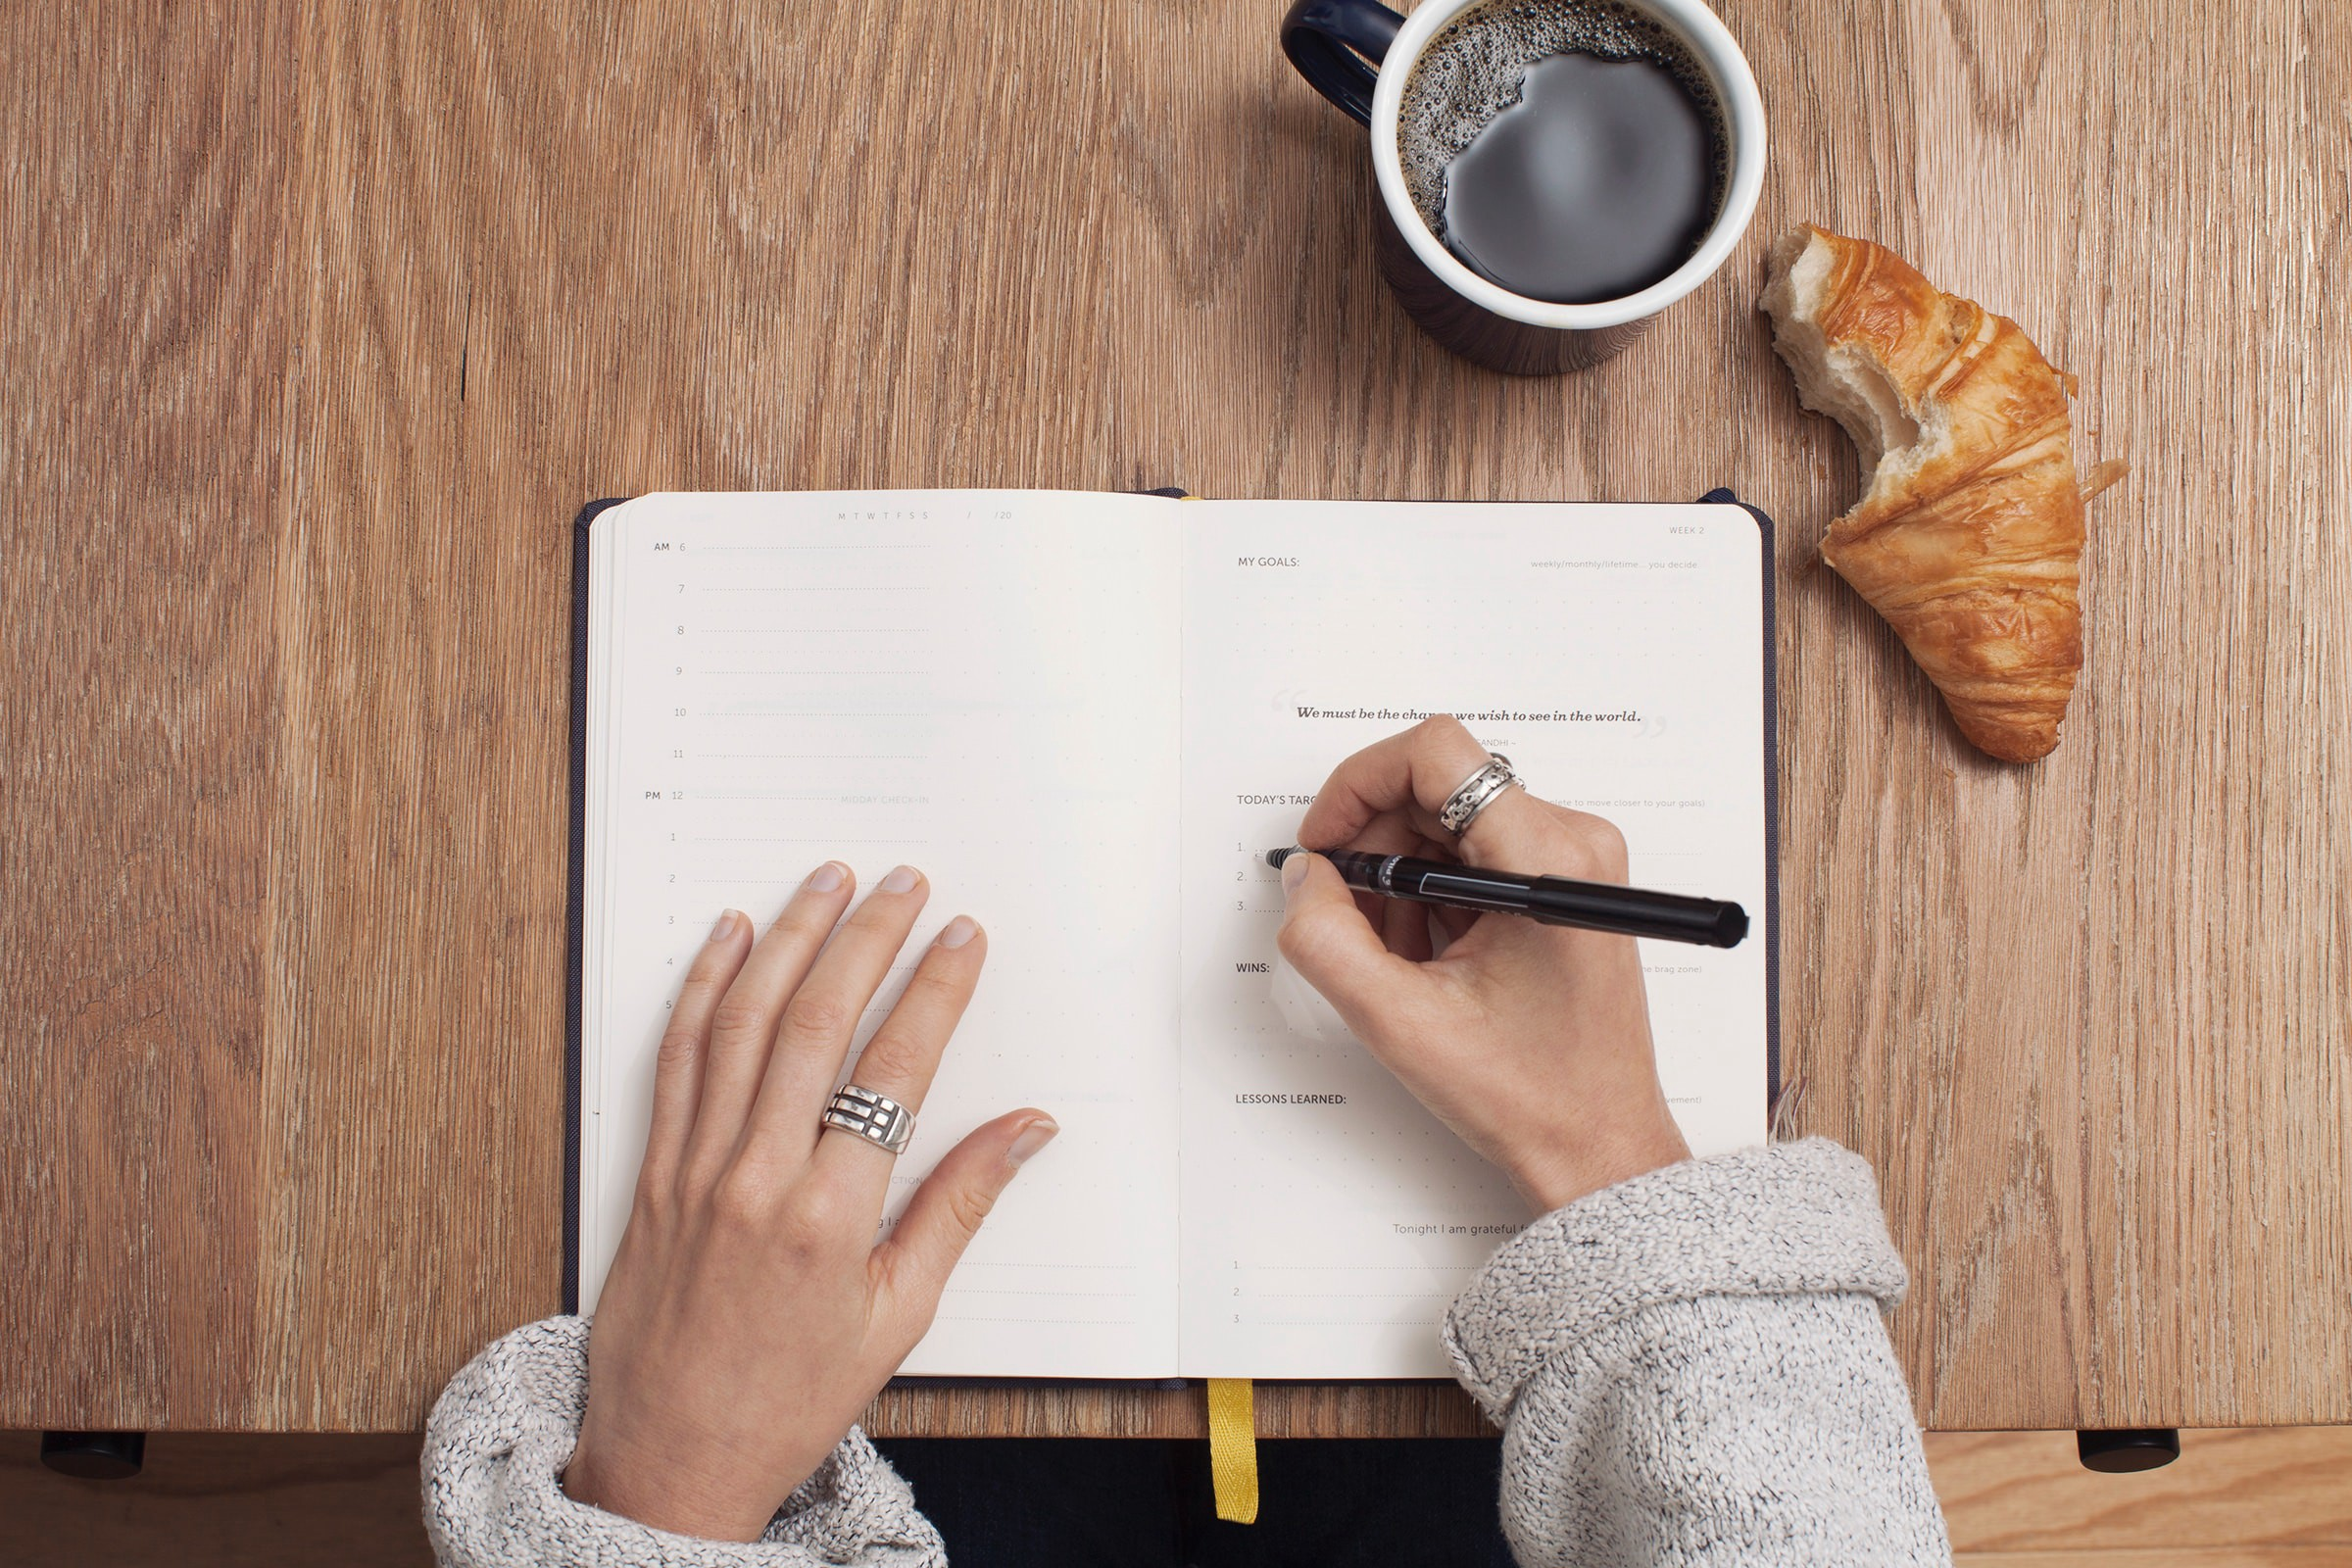 Start Filling in your Outline by Free Writing